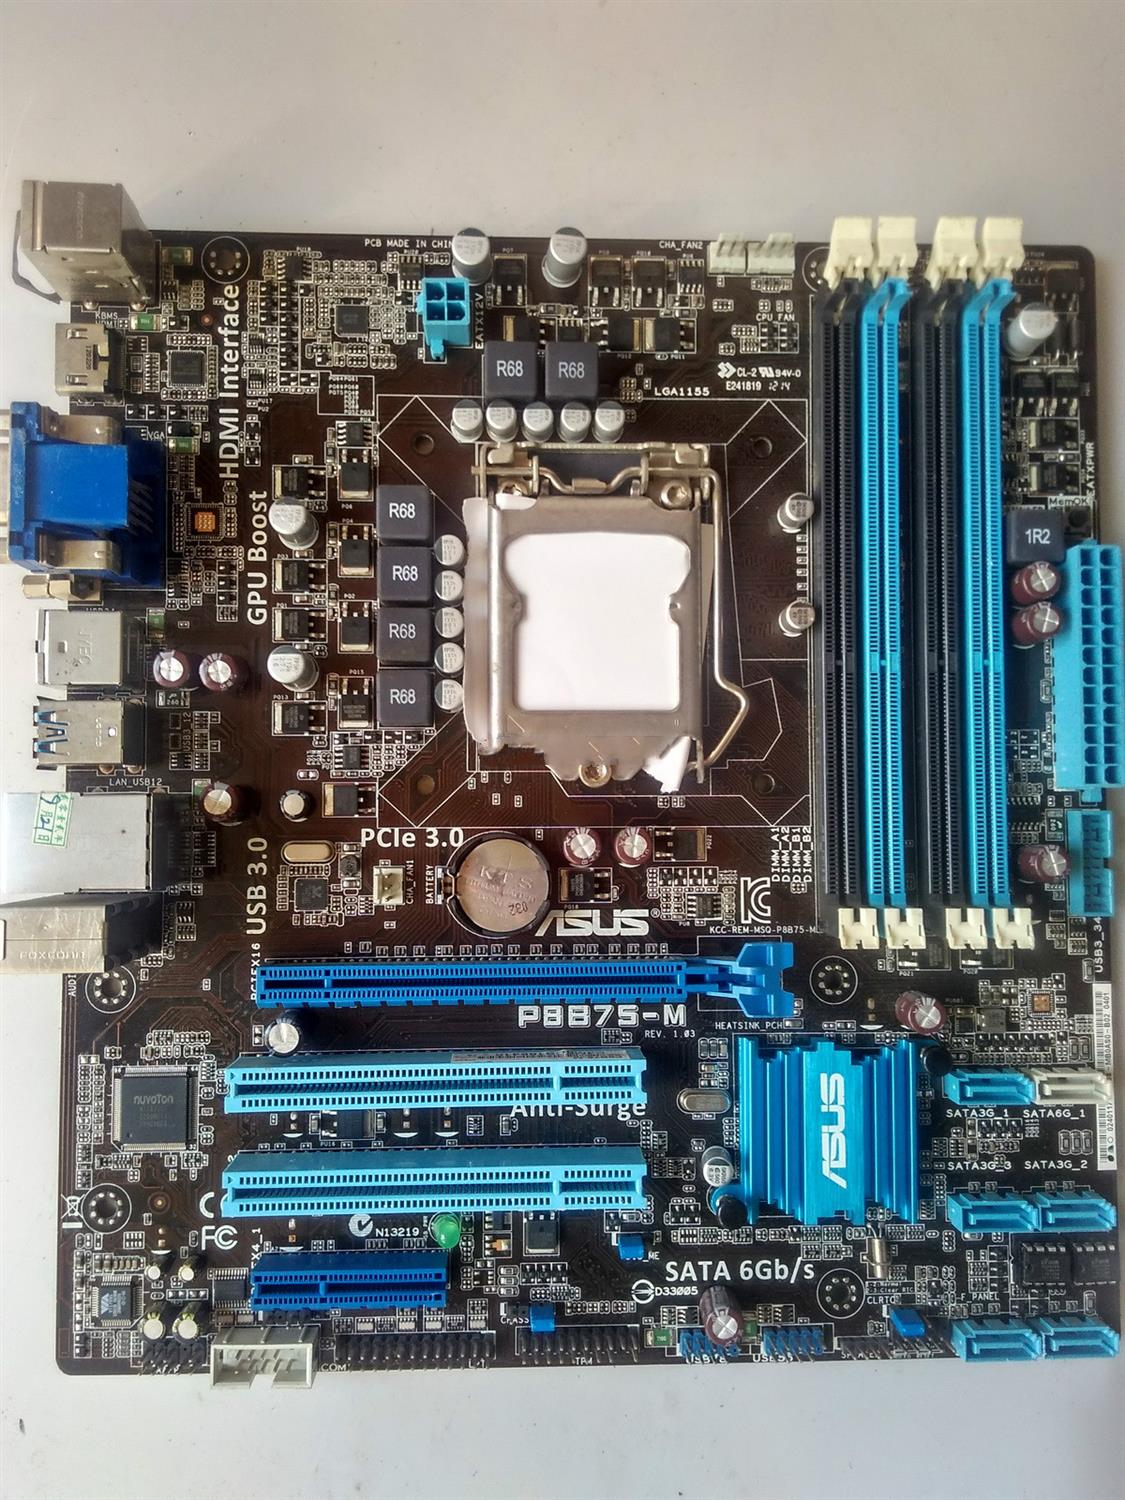 Used,for Asus P8B75-M desktop PC Motherboard B75 Socket LGA 1155 i3 i5 i7 DDR3 SATA3 USB3.0 used for asus p8h77 m pro original used desktop motherboard h77 socket lga 1155 i3 i5 i7 ddr3 32g sata3 usb3 0